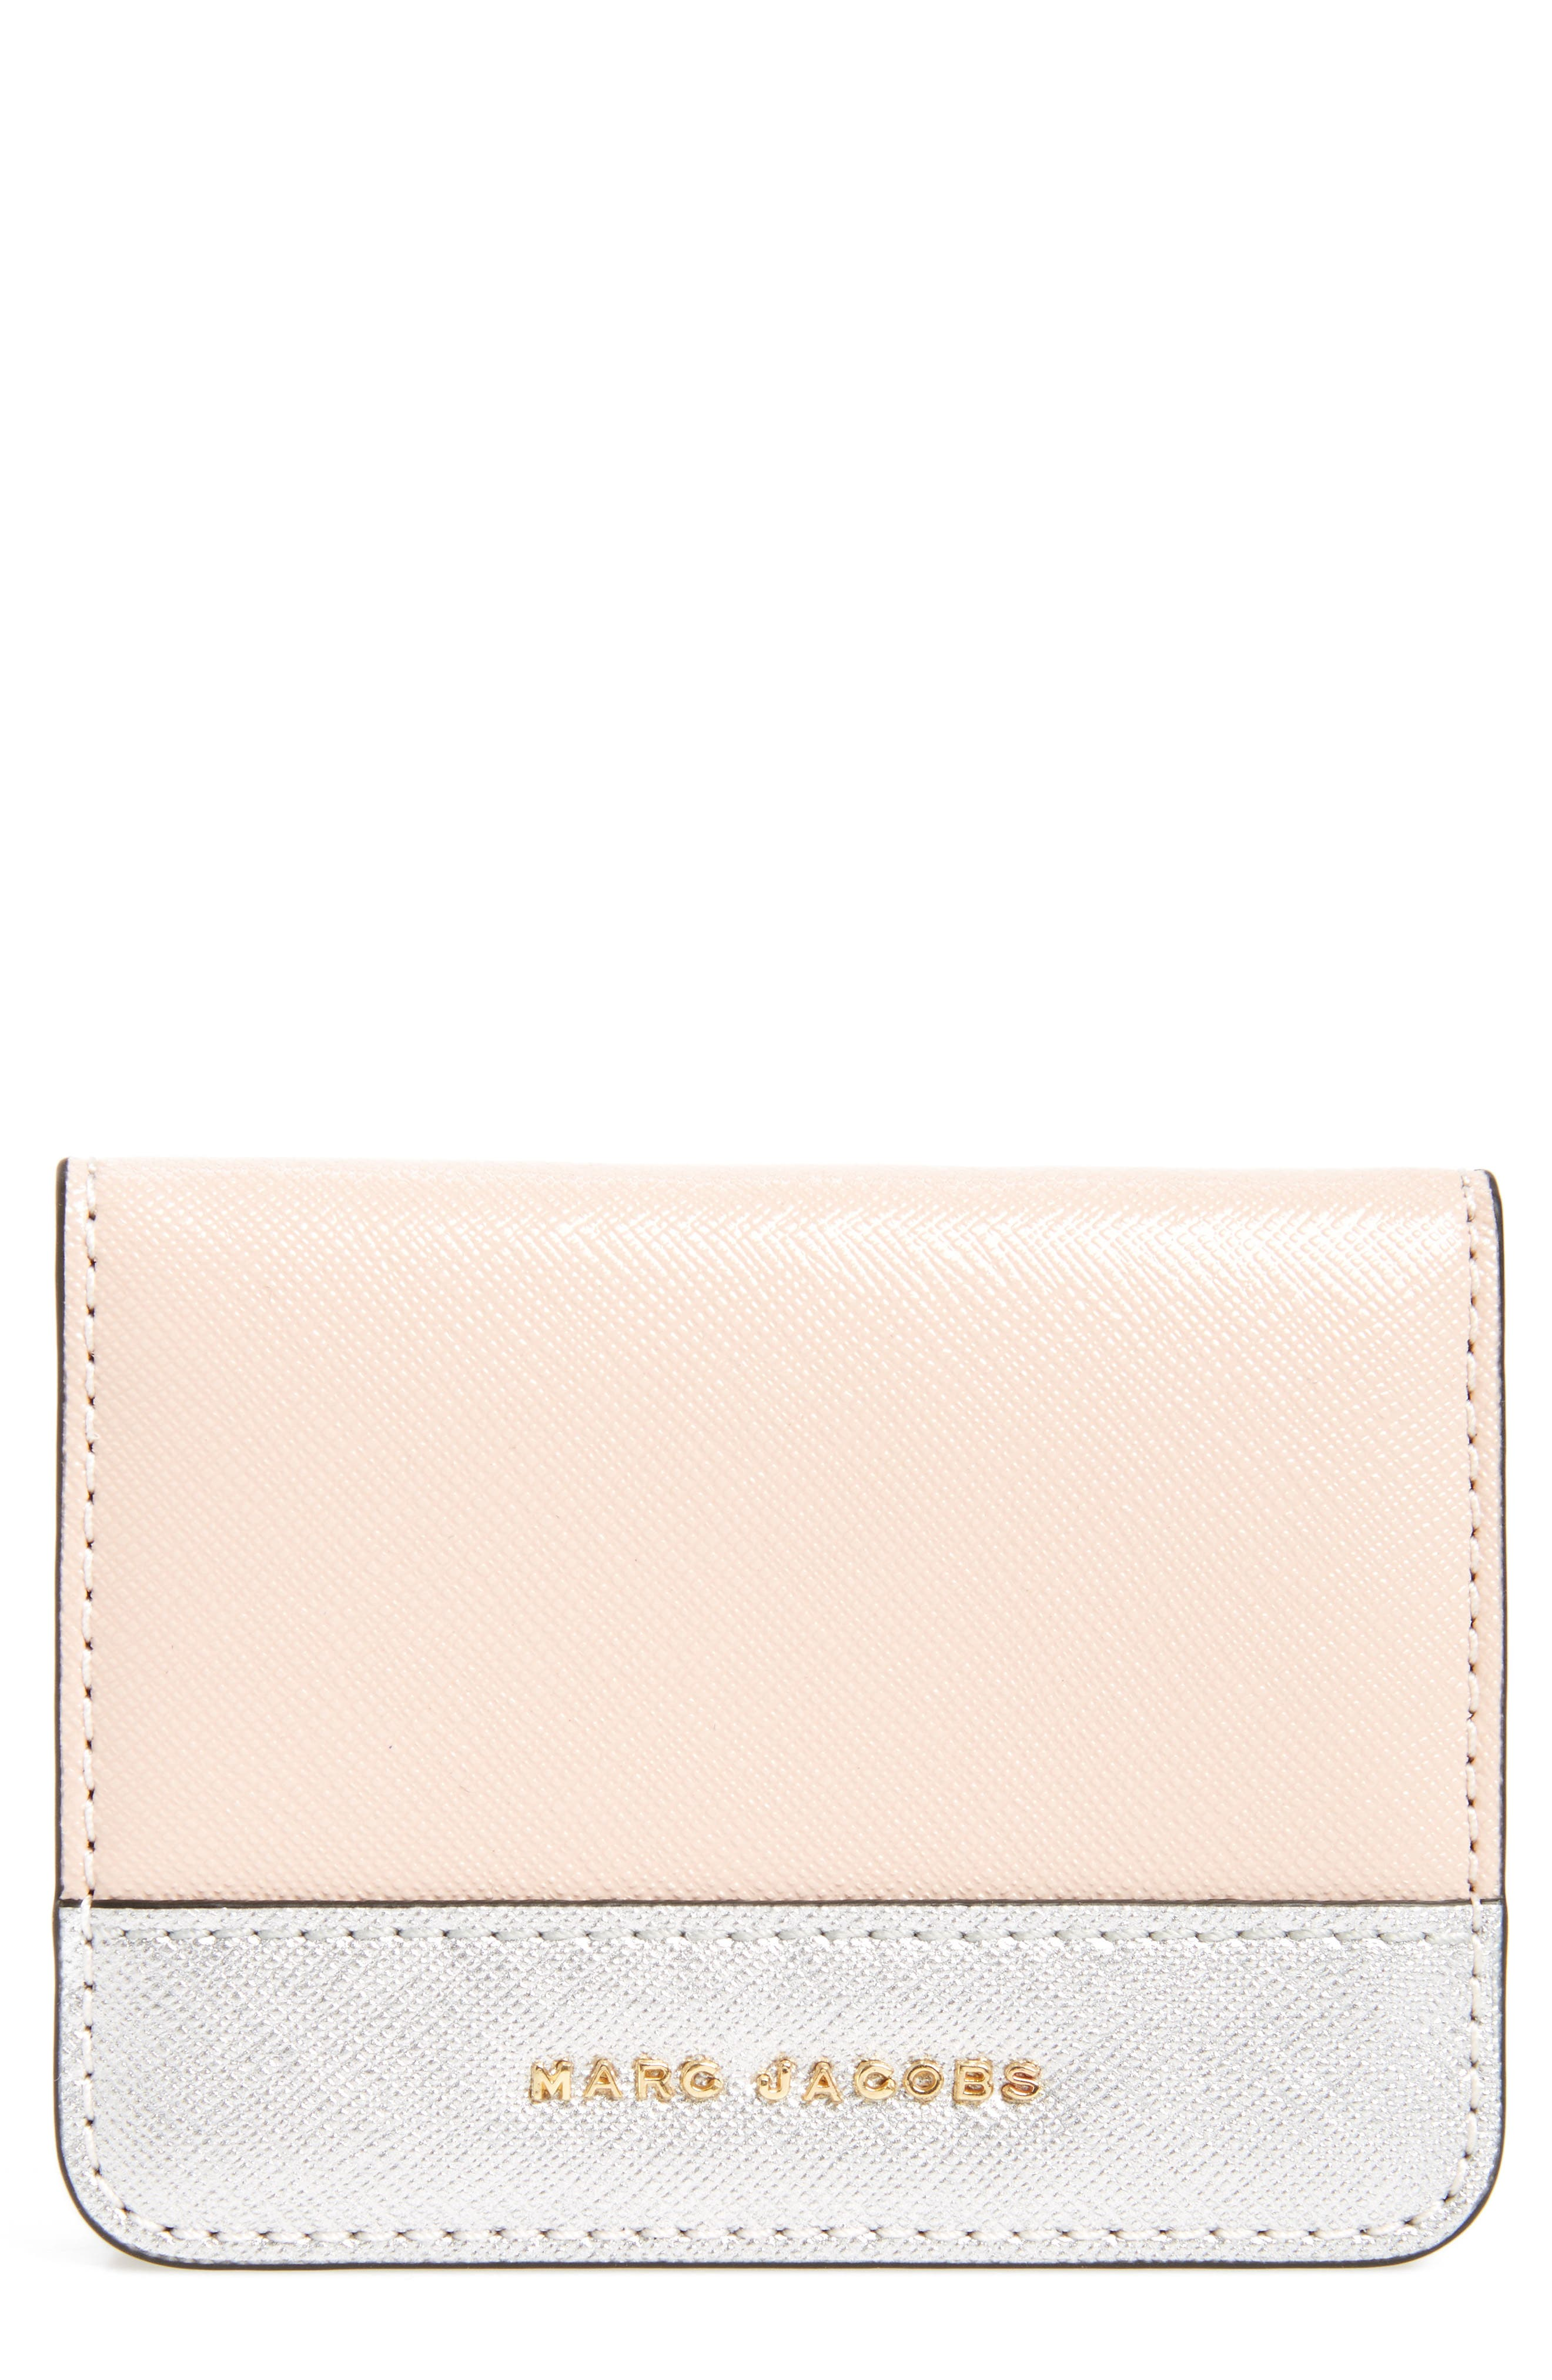 Alternate Image 1 Selected - MARC JACOBS Color Block Saffiano Leather Business Card Case